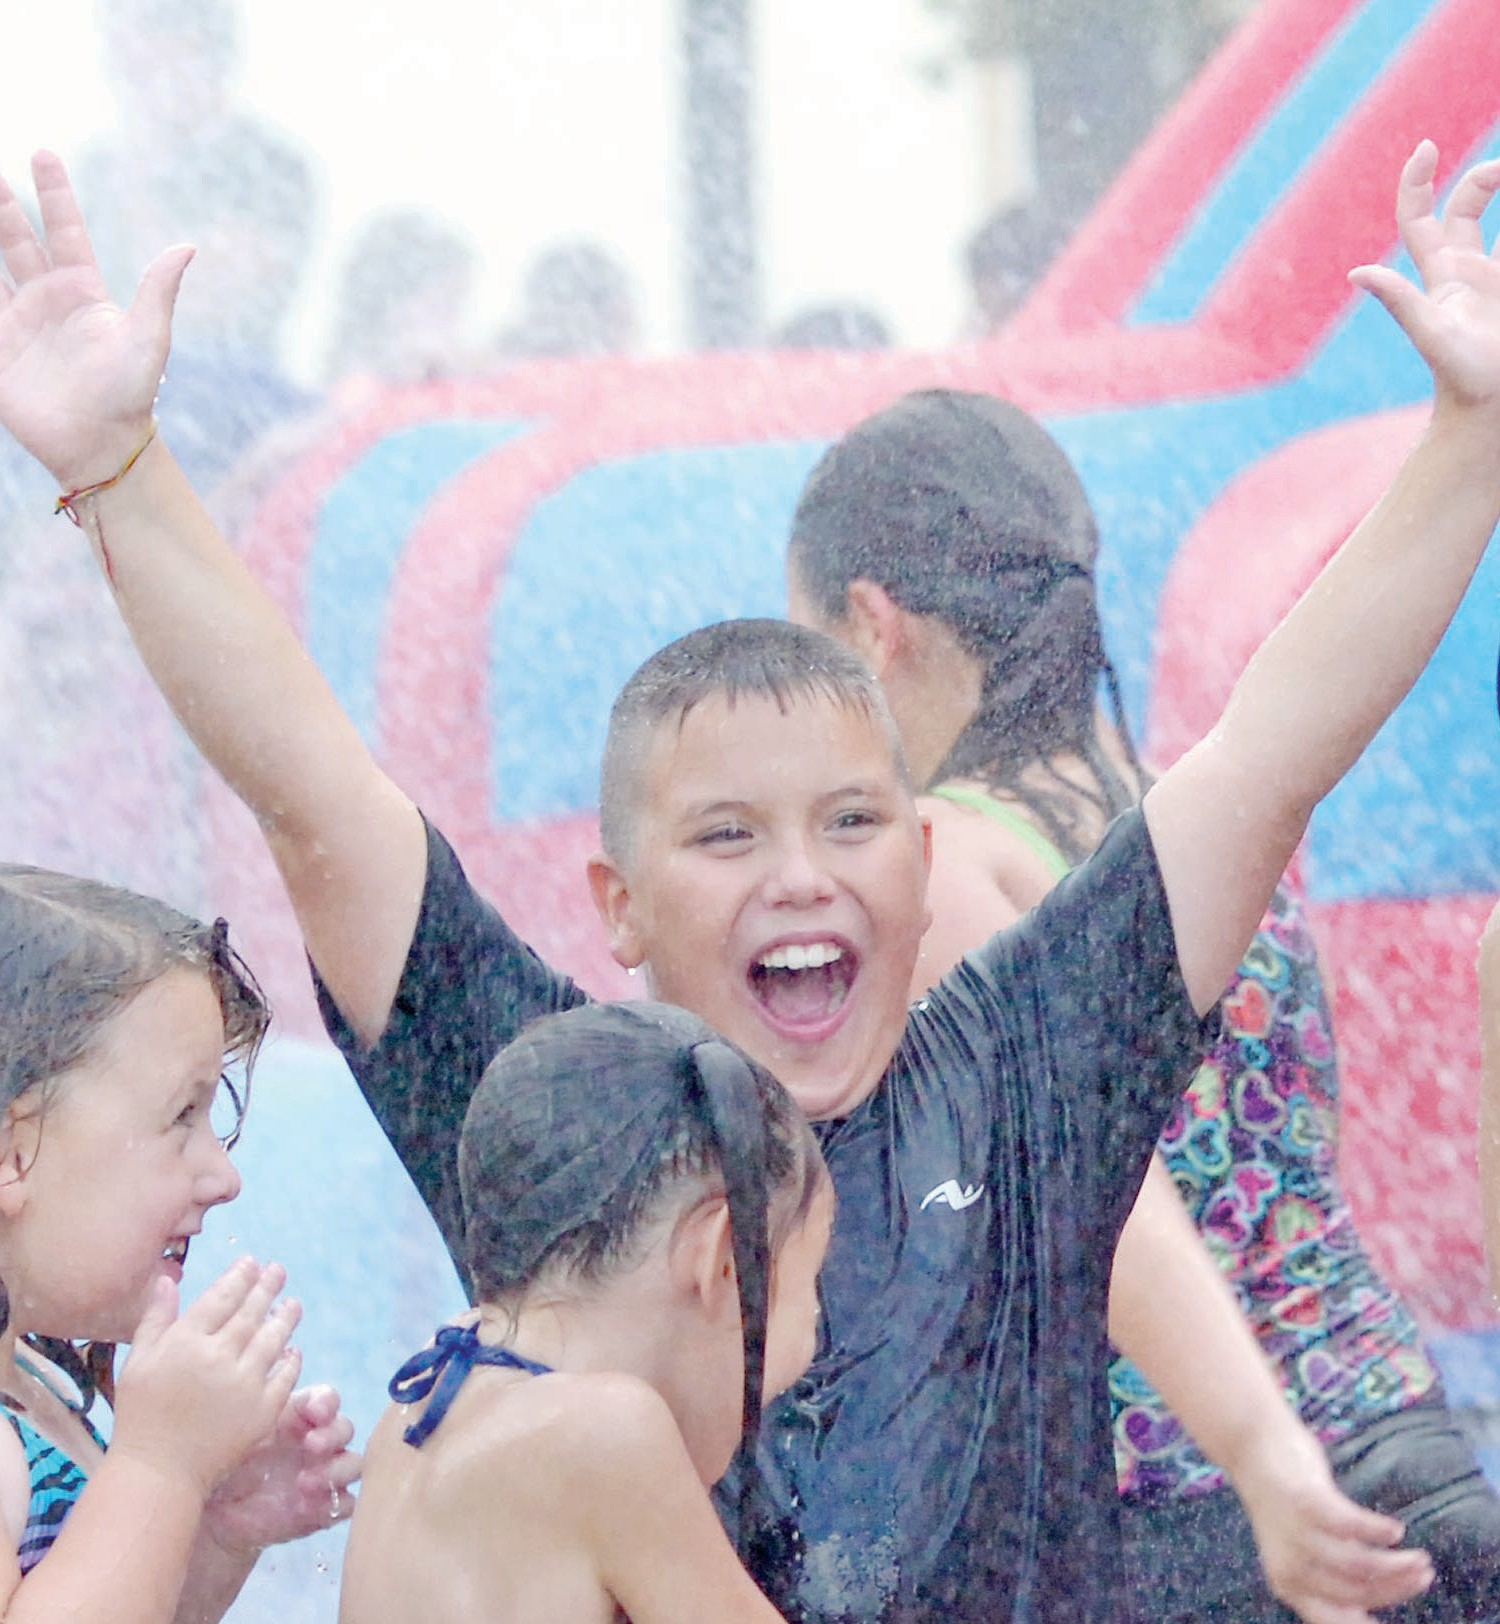 Brandon Morales of Pleasanton shows his joy while playing in the water during a water day at First Baptist Church in Pleasanton.